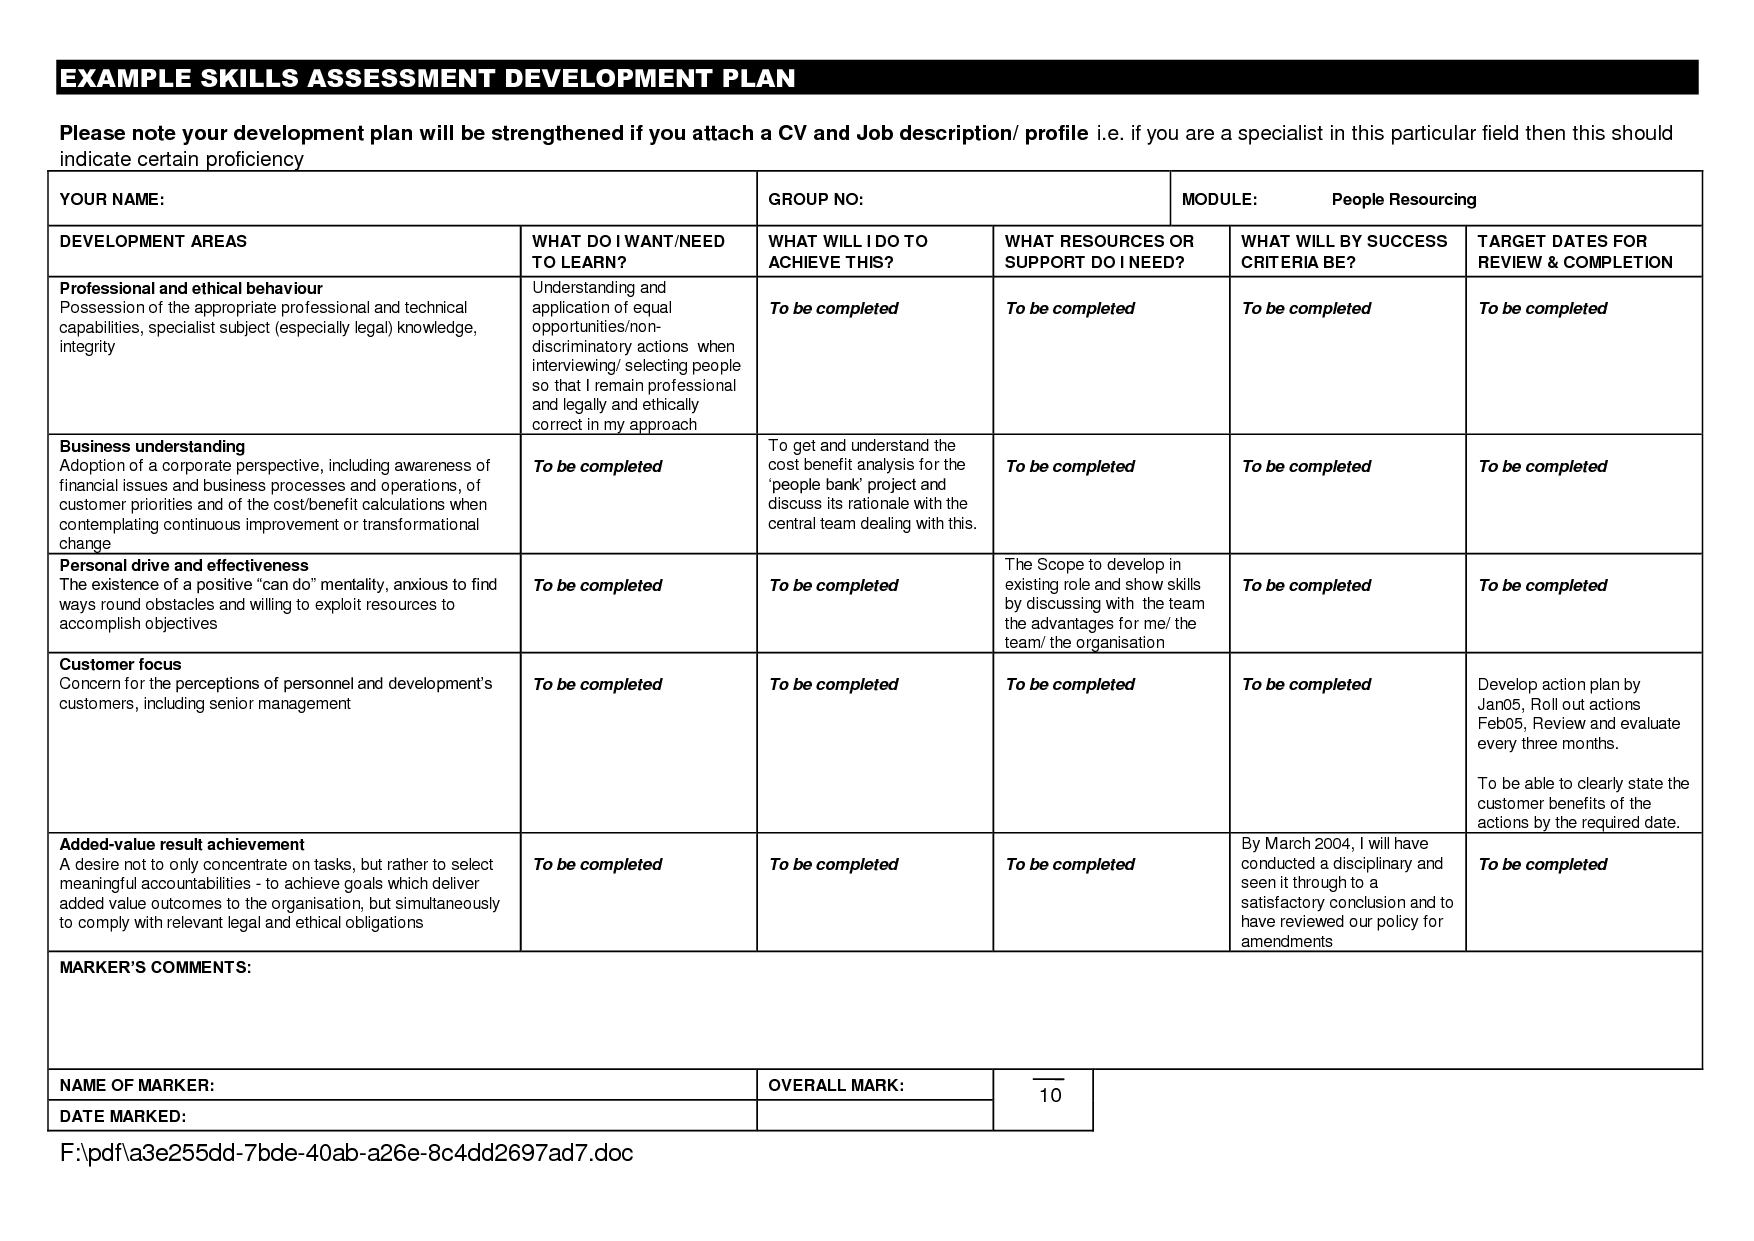 Template For Personal Development Plan Sample Personal Development Plan  Template 6 Free Sample, 6 Free Personal Development Plan Templates Excel  Pdf Formats ...  Personal Development Portfolio Template